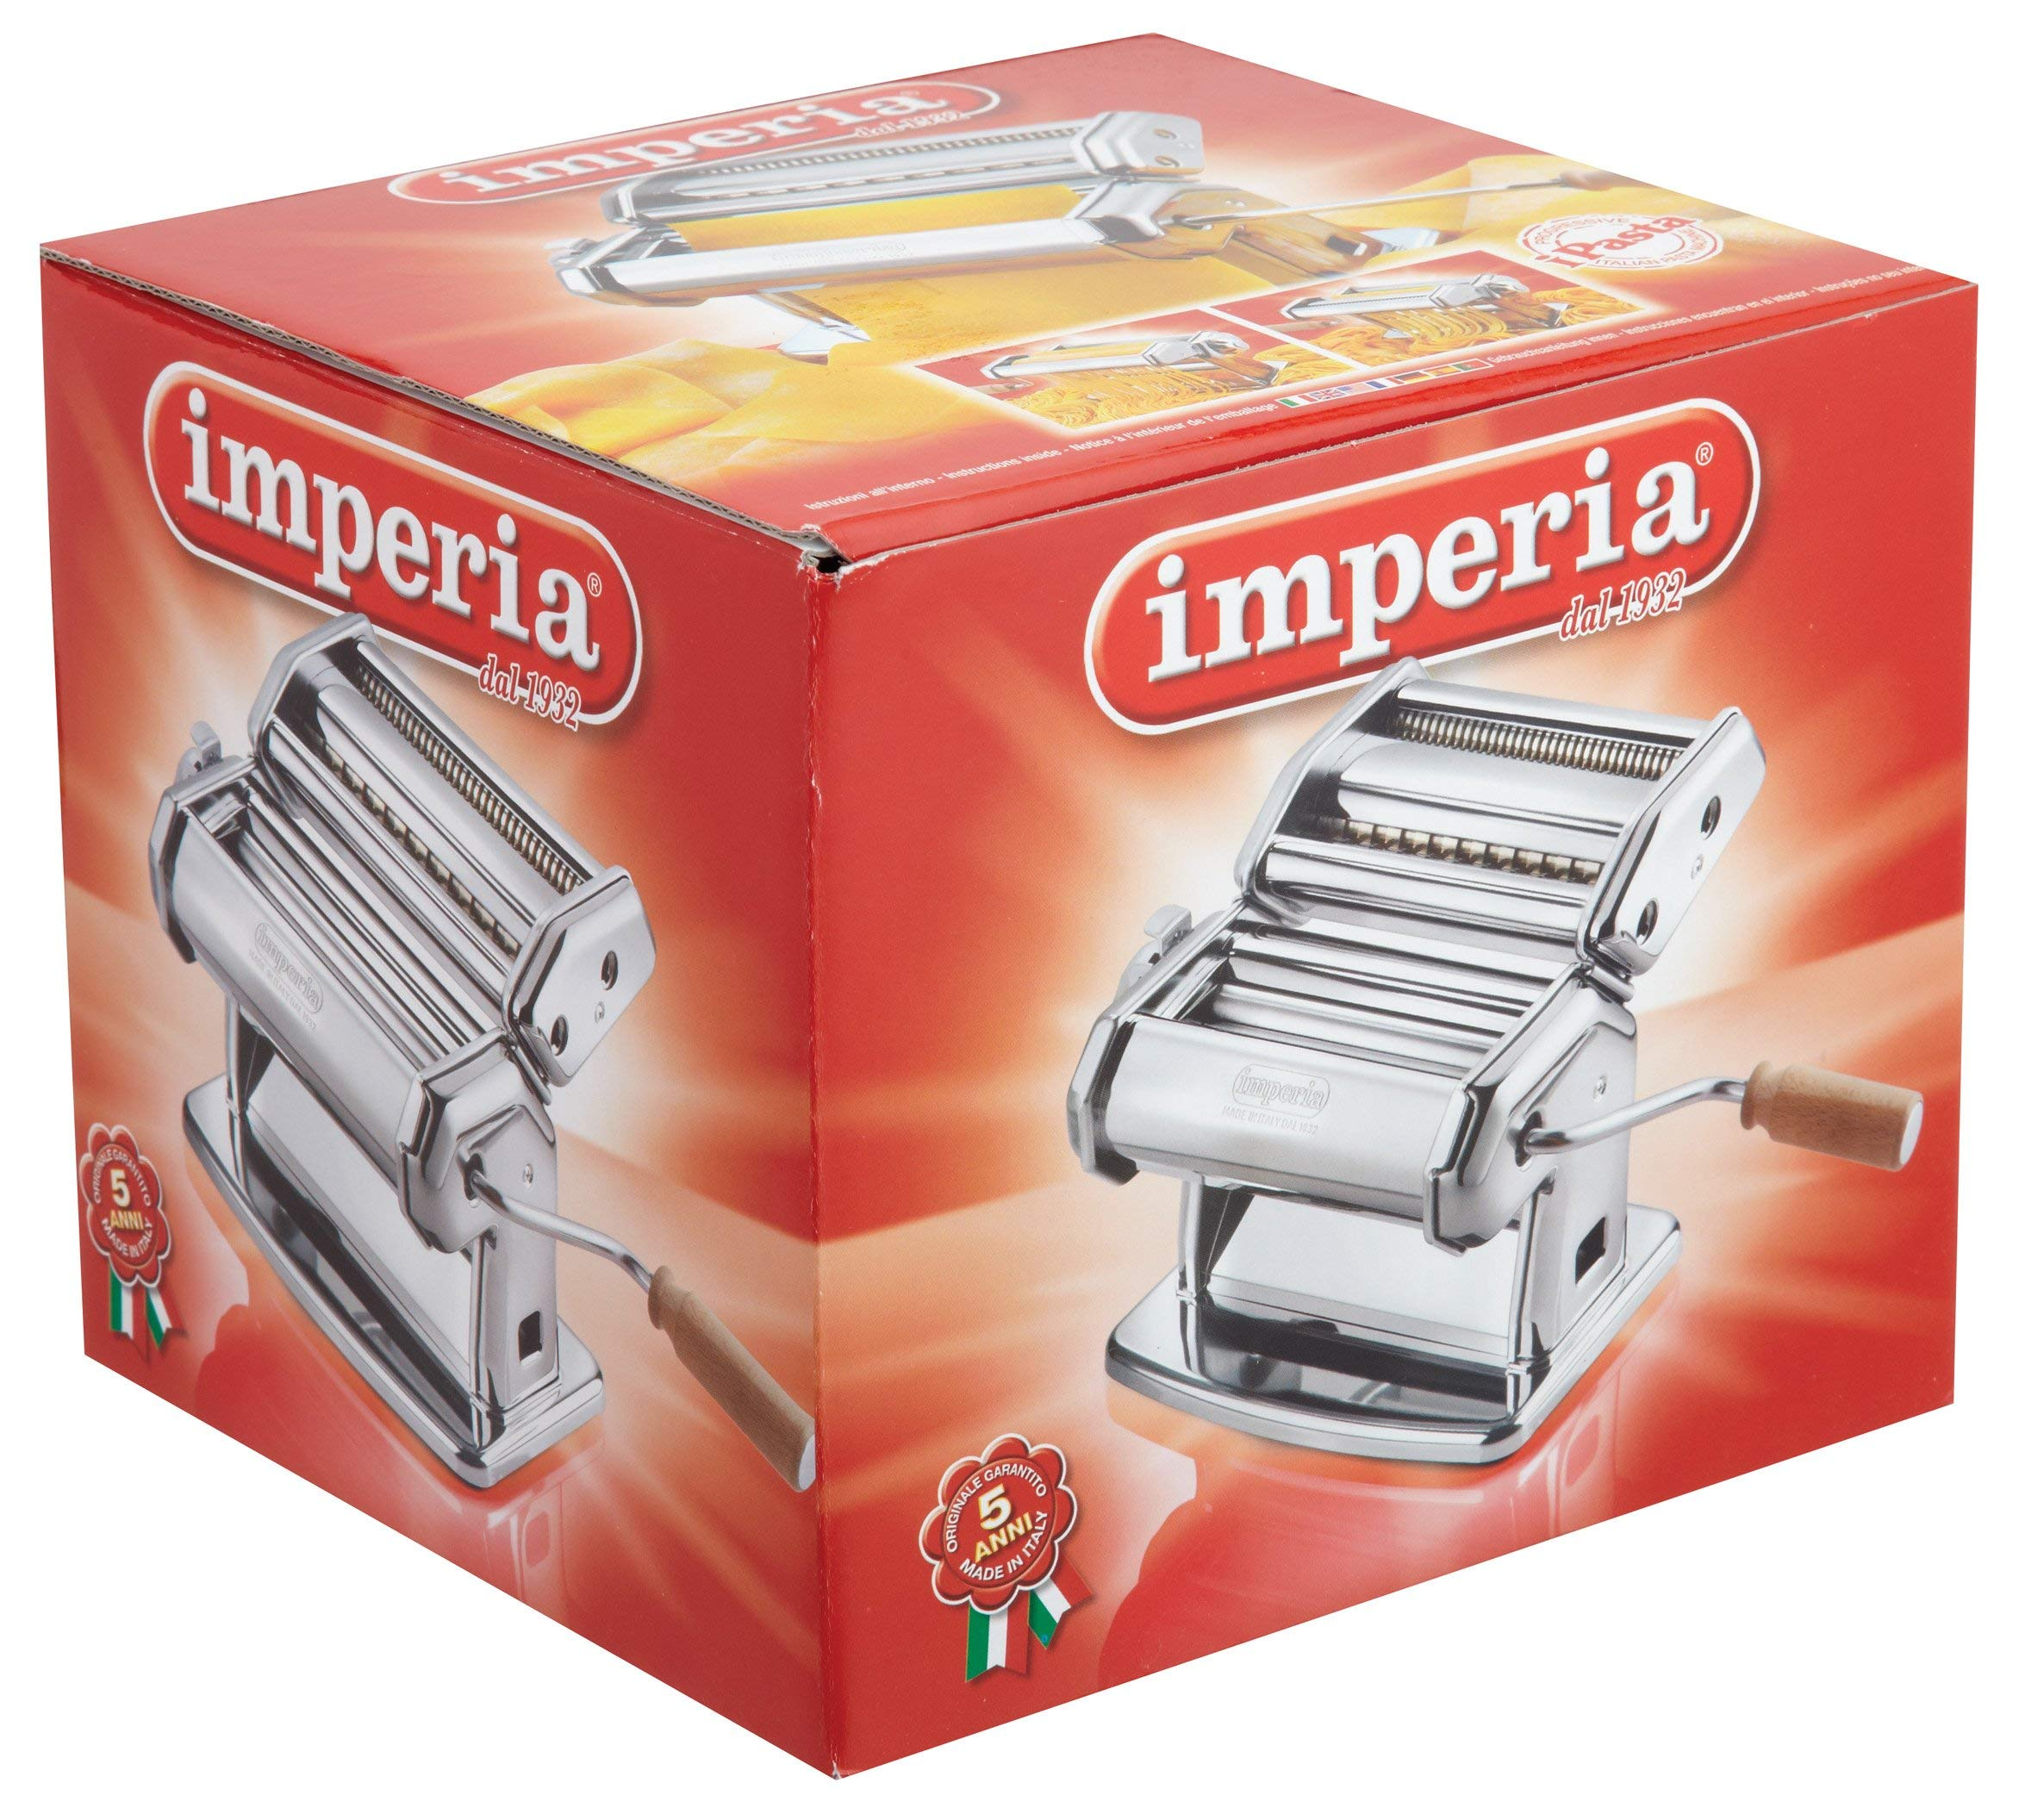 Imperia Pasta Maker Machine - Heavy Duty Steel Construction w Easy Lock Dial and Wood Grip Handle- Model 150 Made in Italy (Renewed) by Imperia